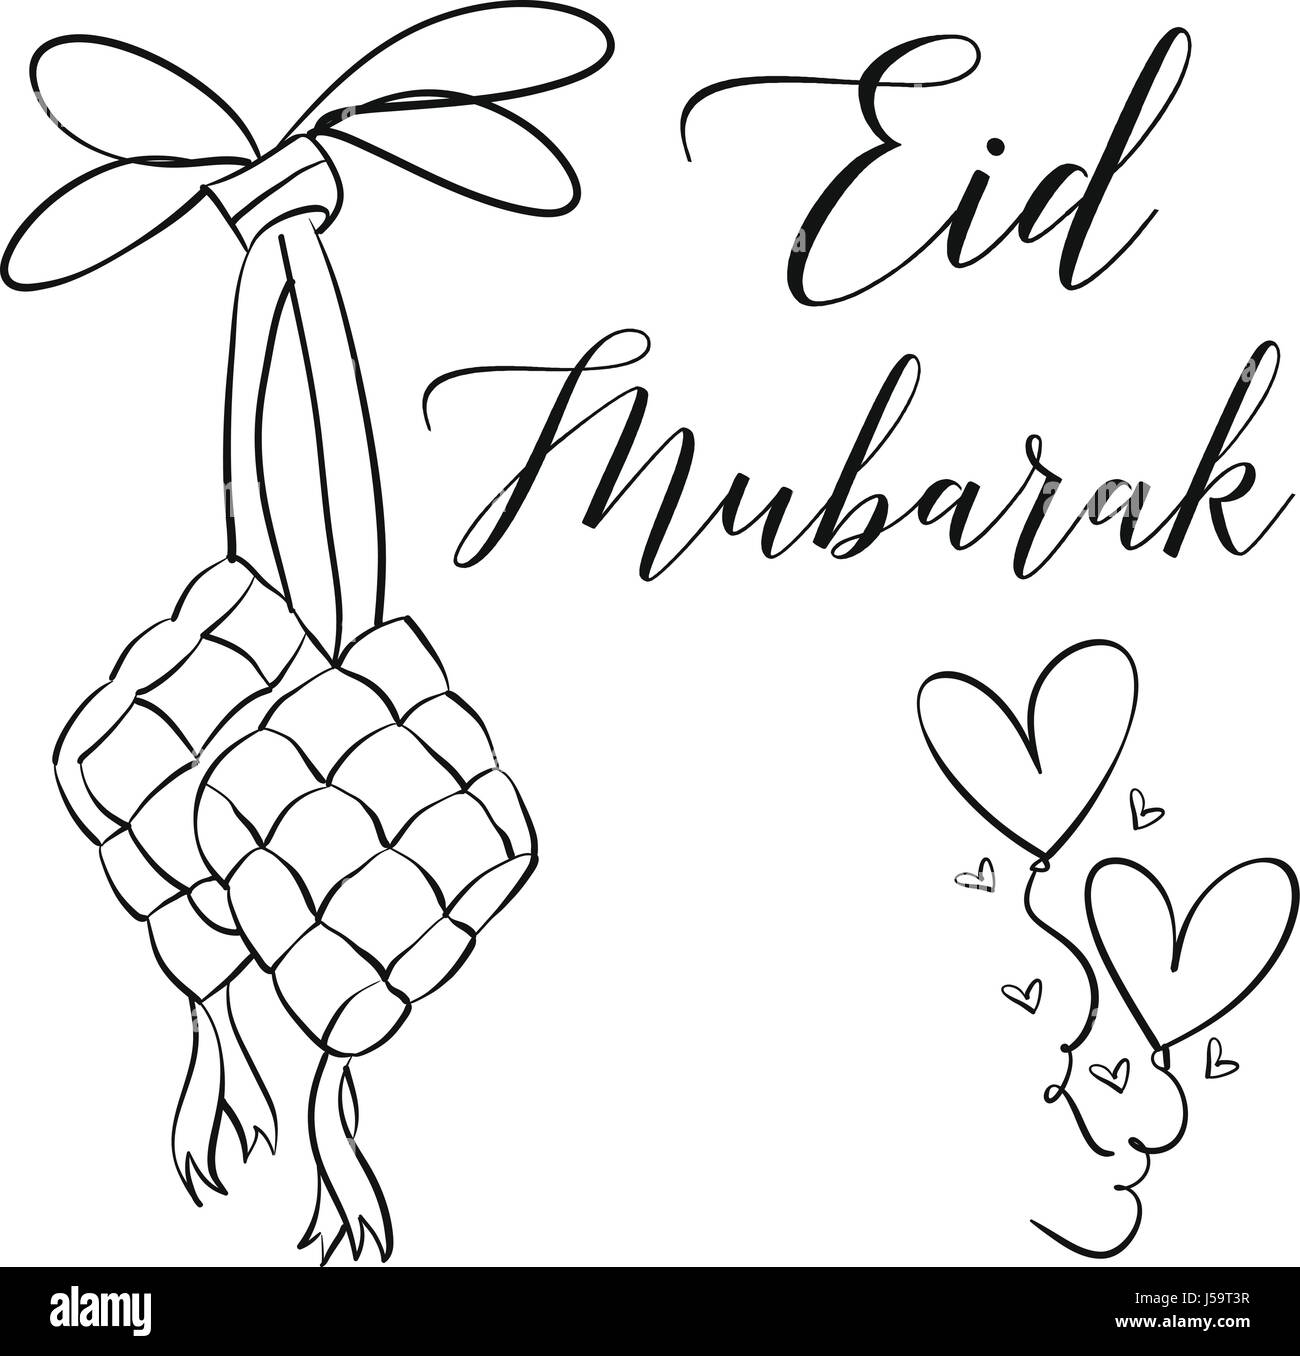 Hand draw greeting card eid mubarak stock vector art illustration hand draw greeting card eid mubarak m4hsunfo